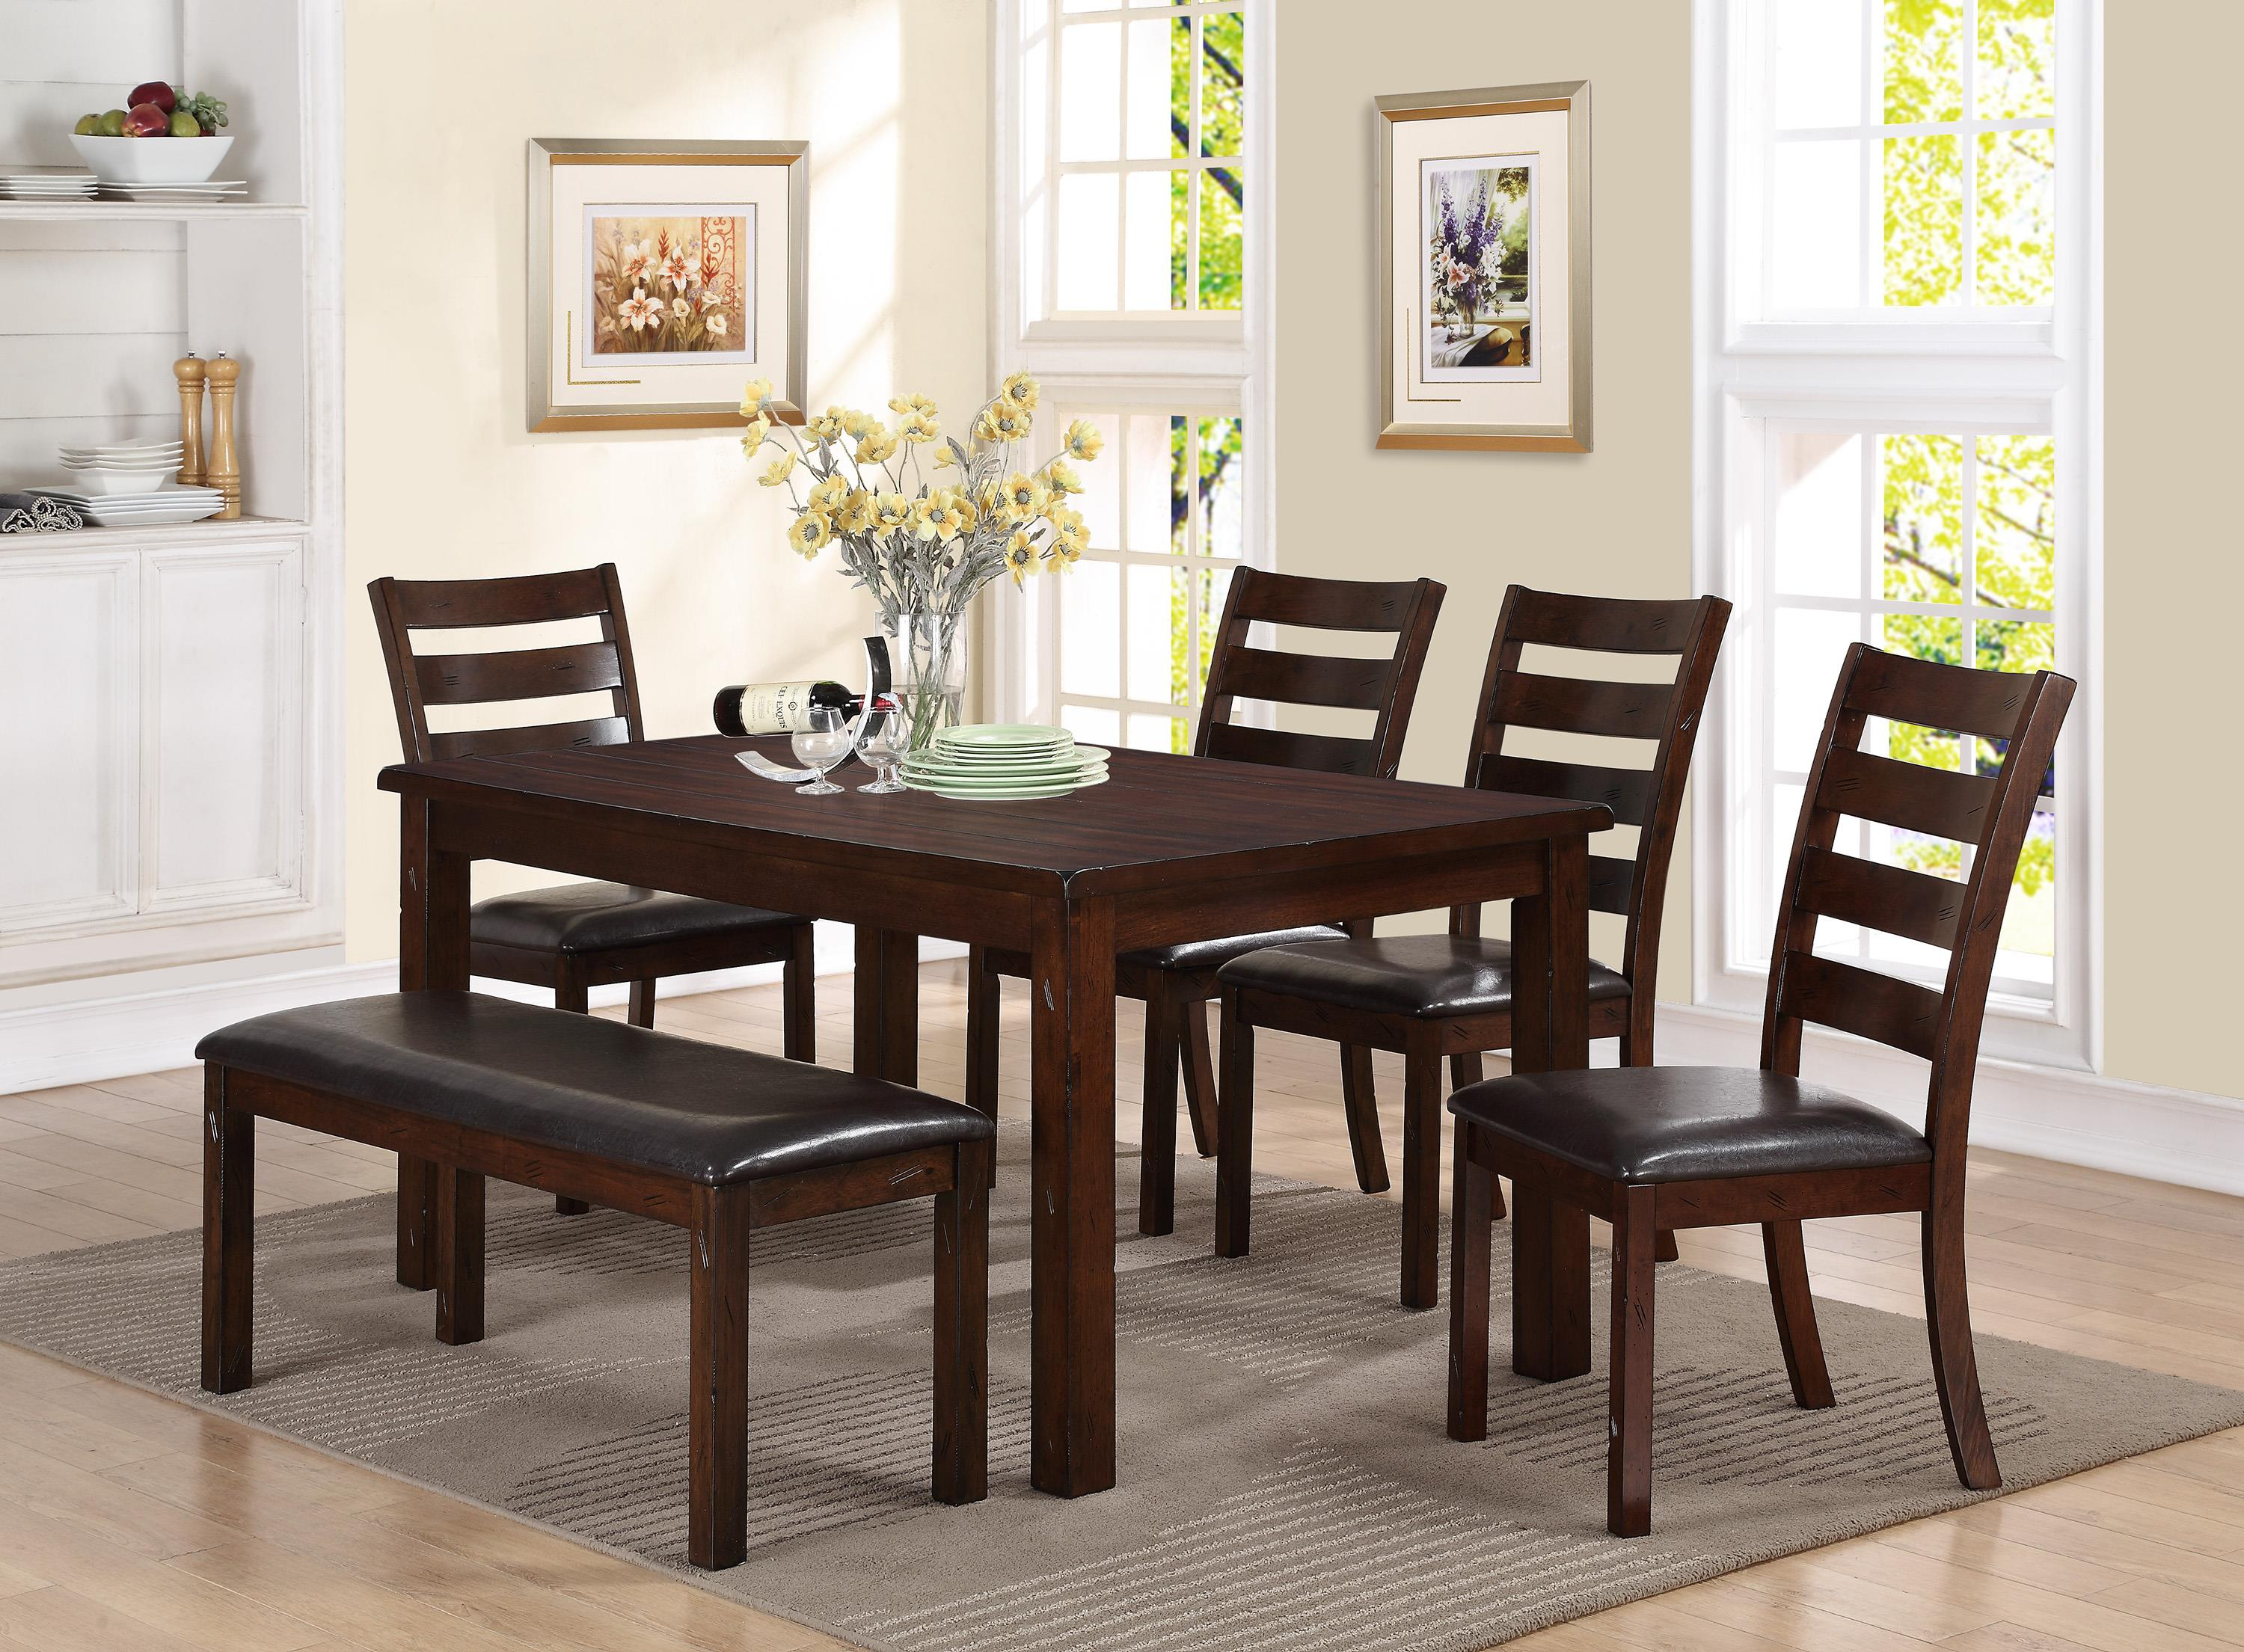 Crown Mark Quinn 6 Piece Dining Set with Bench - Item Number: 2164-6P